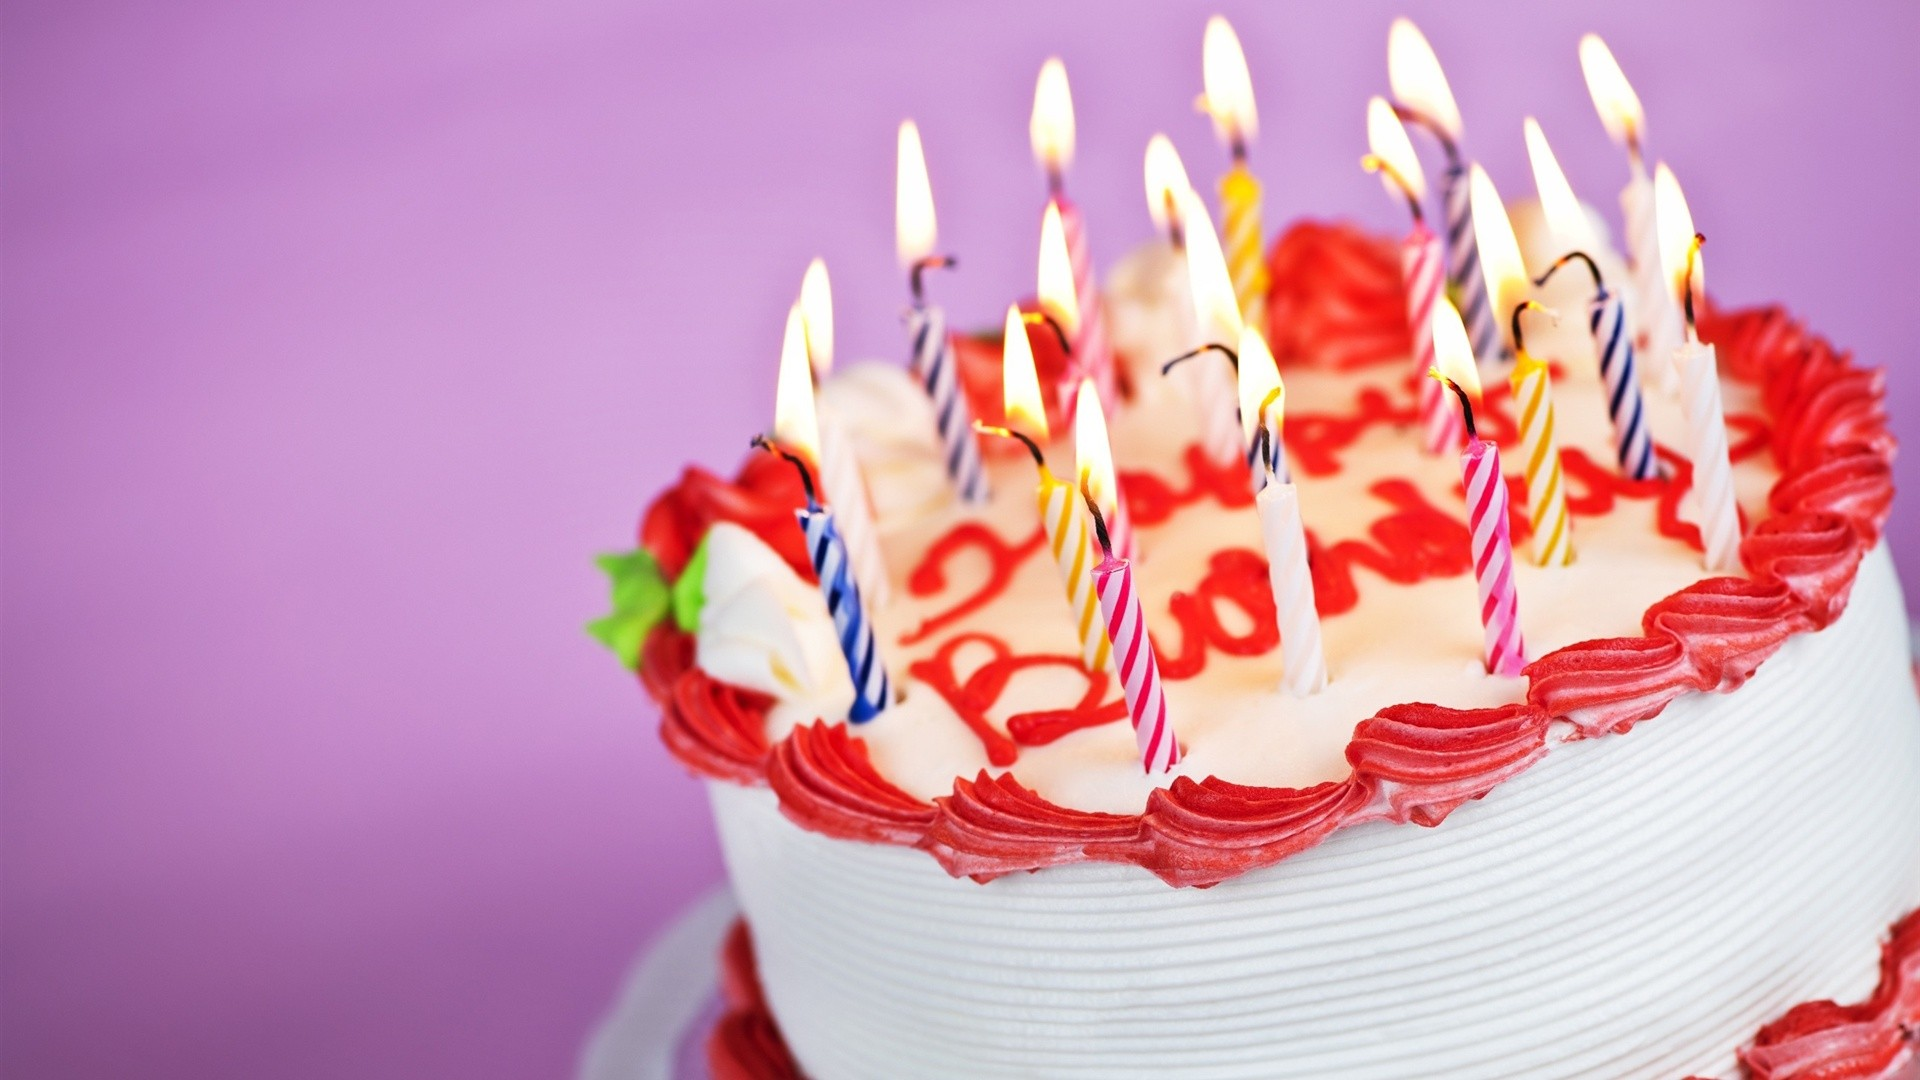 live wallpaper for birthday wishes ; birthday-cake-wallpaper-3d-37